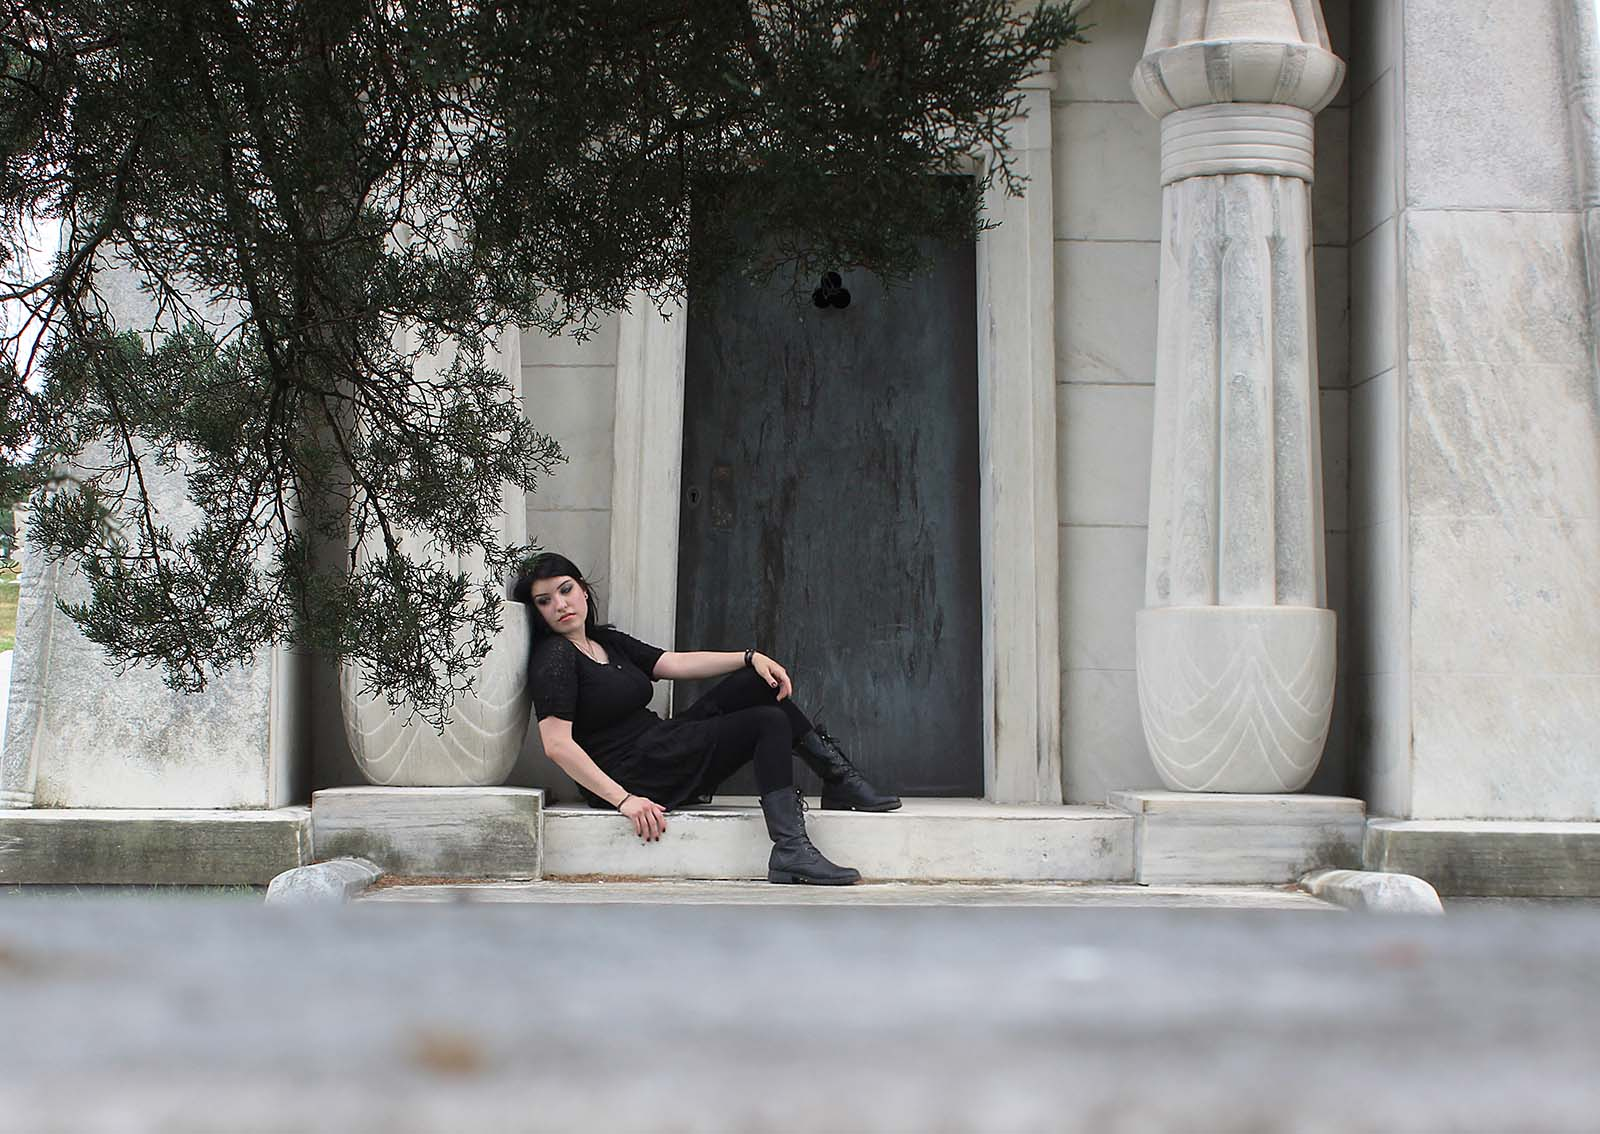 Author looking melancholy and gloomy at a mausoleum in the Laurel Hill Cemetery, dressed in black.